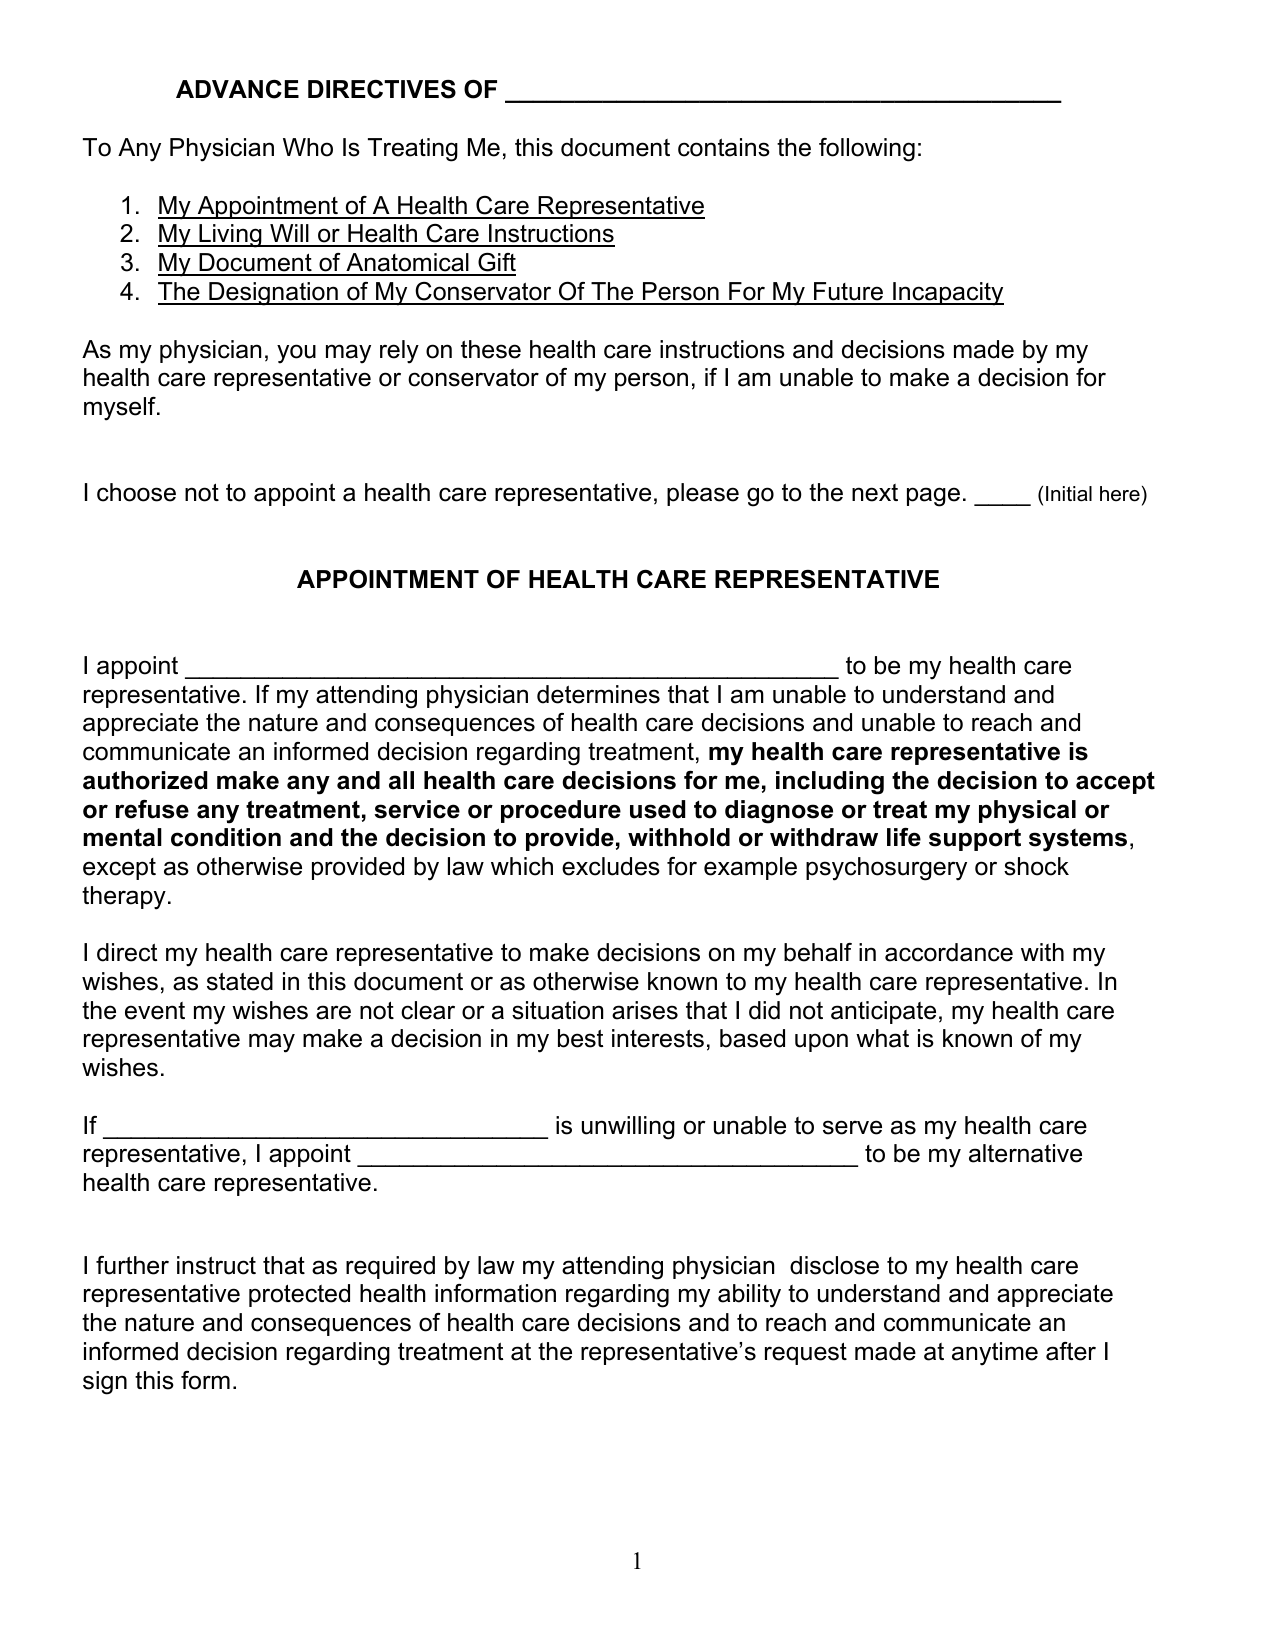 Download Connecticut Living Will Form Advance Directive